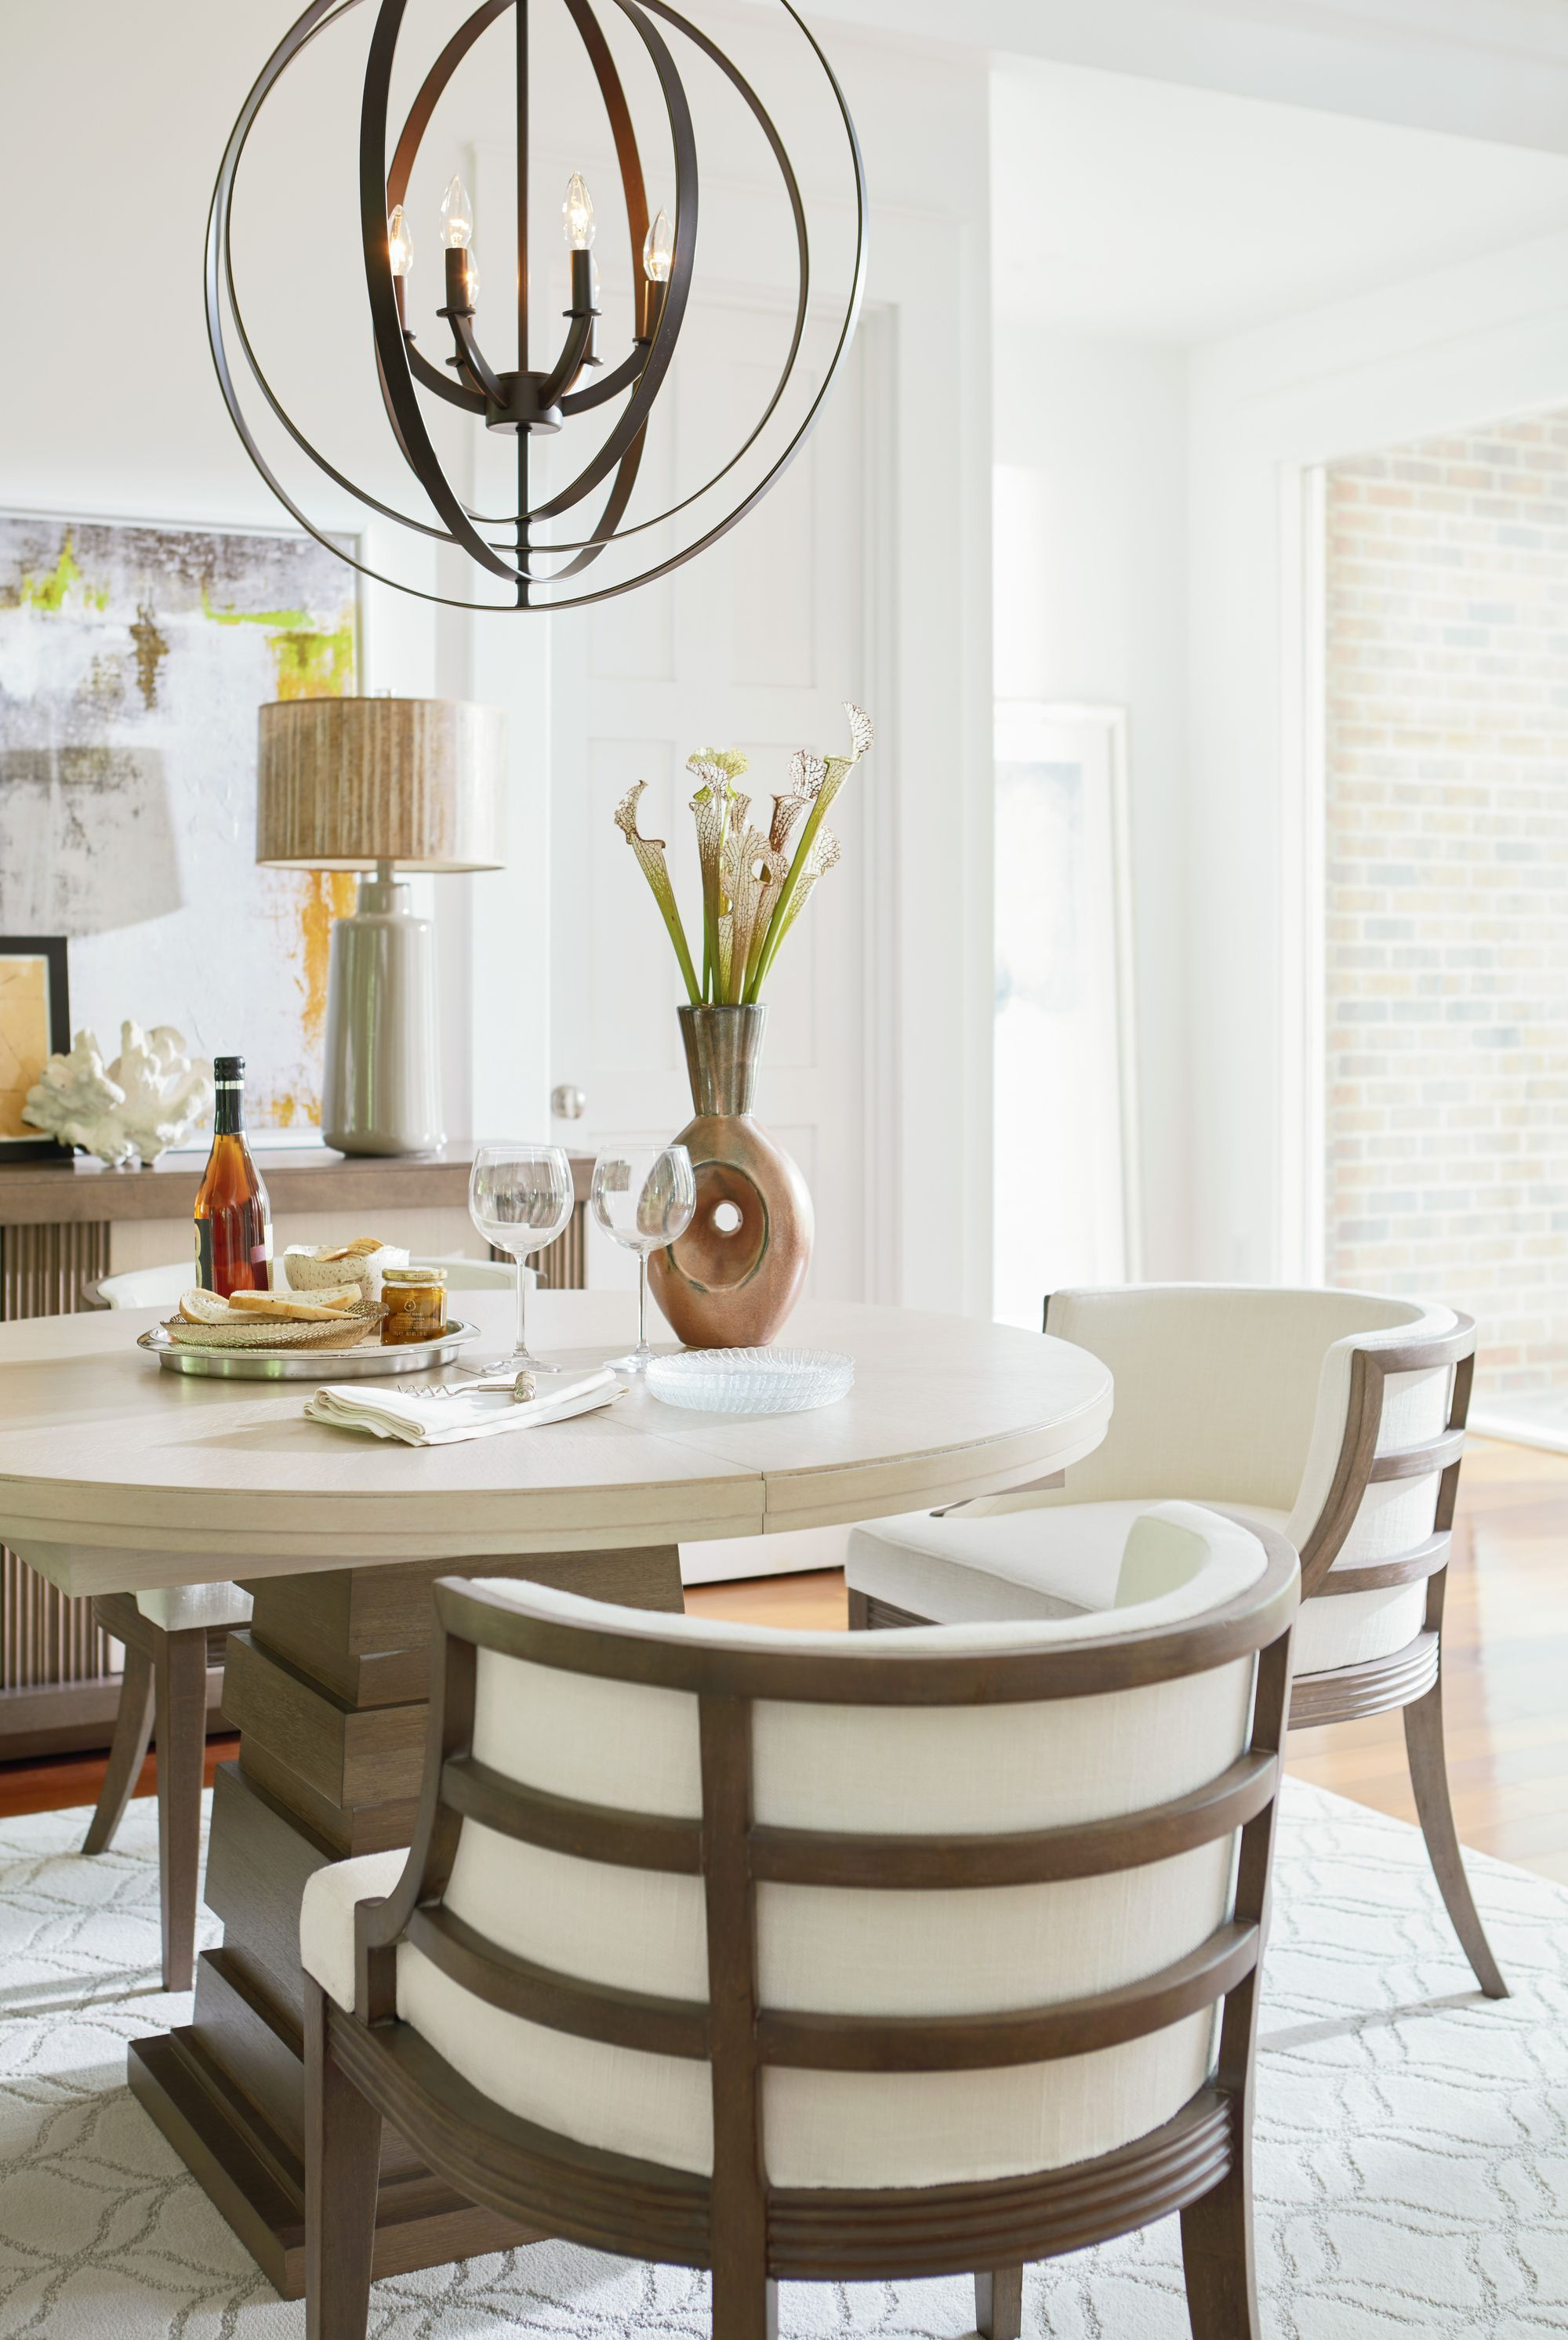 Shop The Synchronicity Collection From Universal Furniture At Furnitureland South Today Side Chairs Dining Round Extendable Dining Table Round Dining